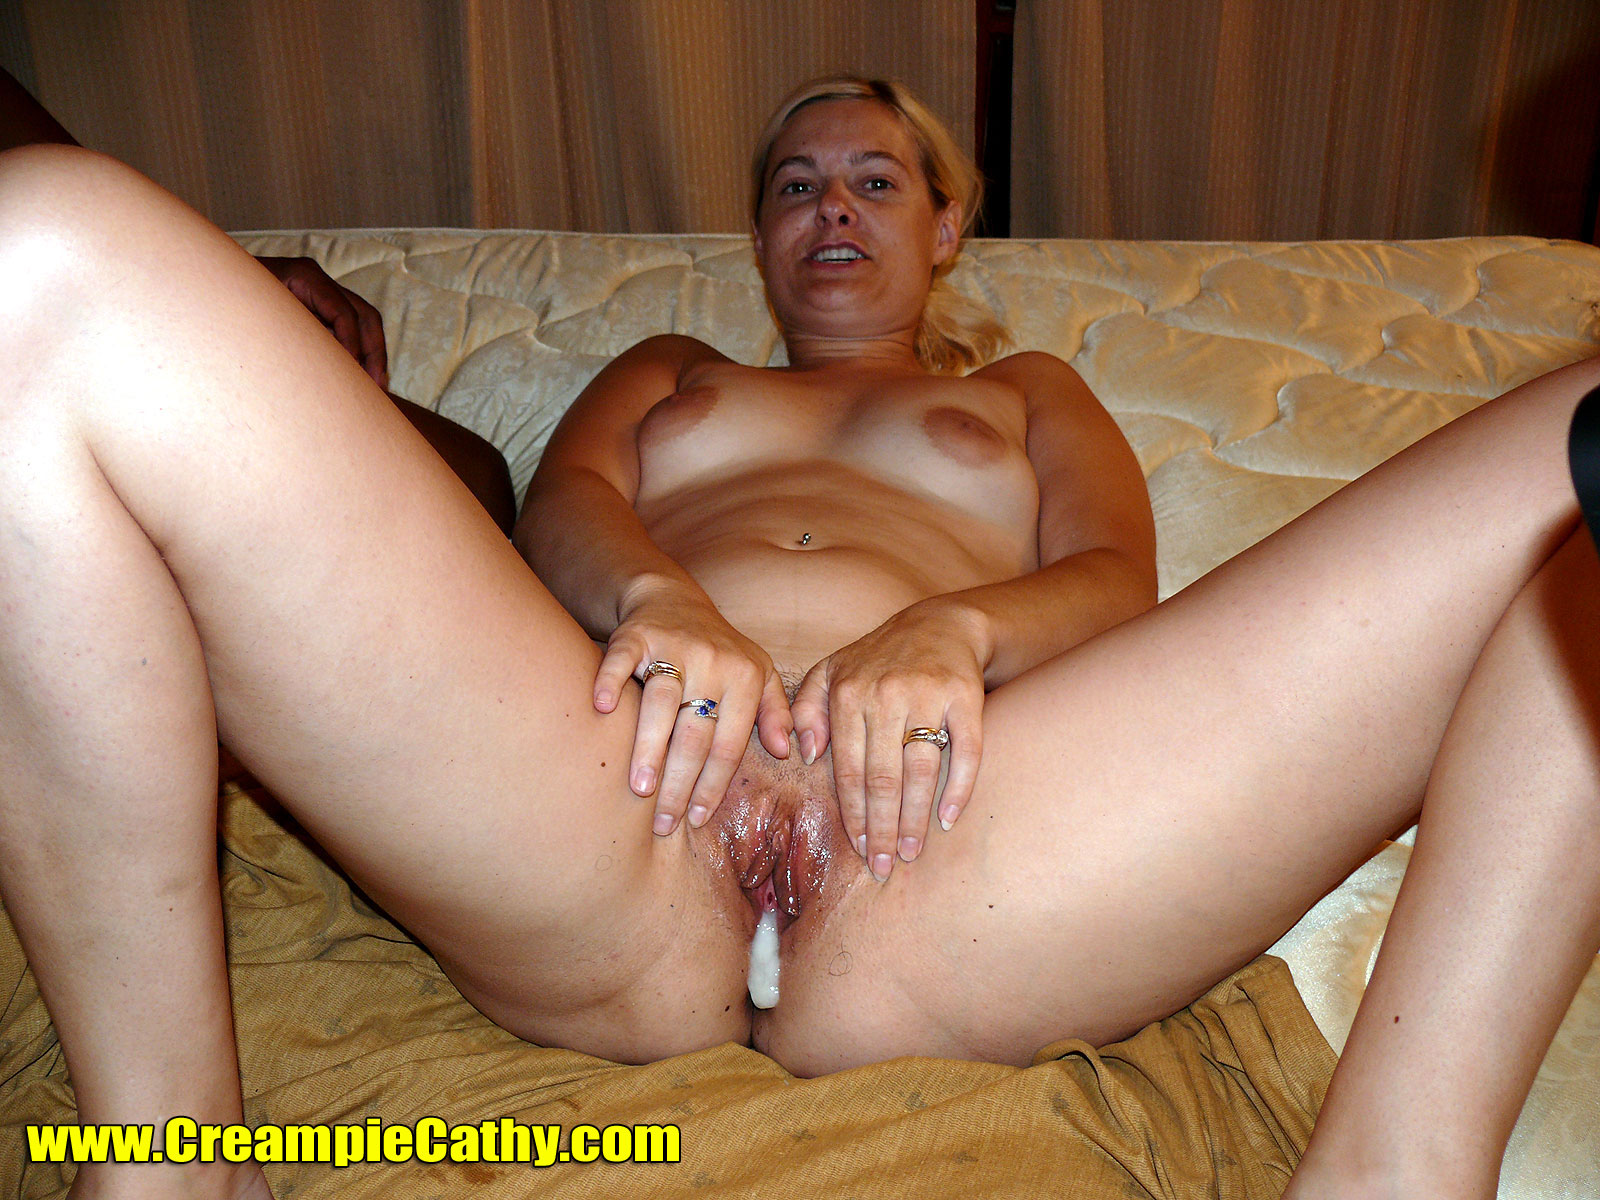 join told chubby latina fuck amateur curious question Earlier thought